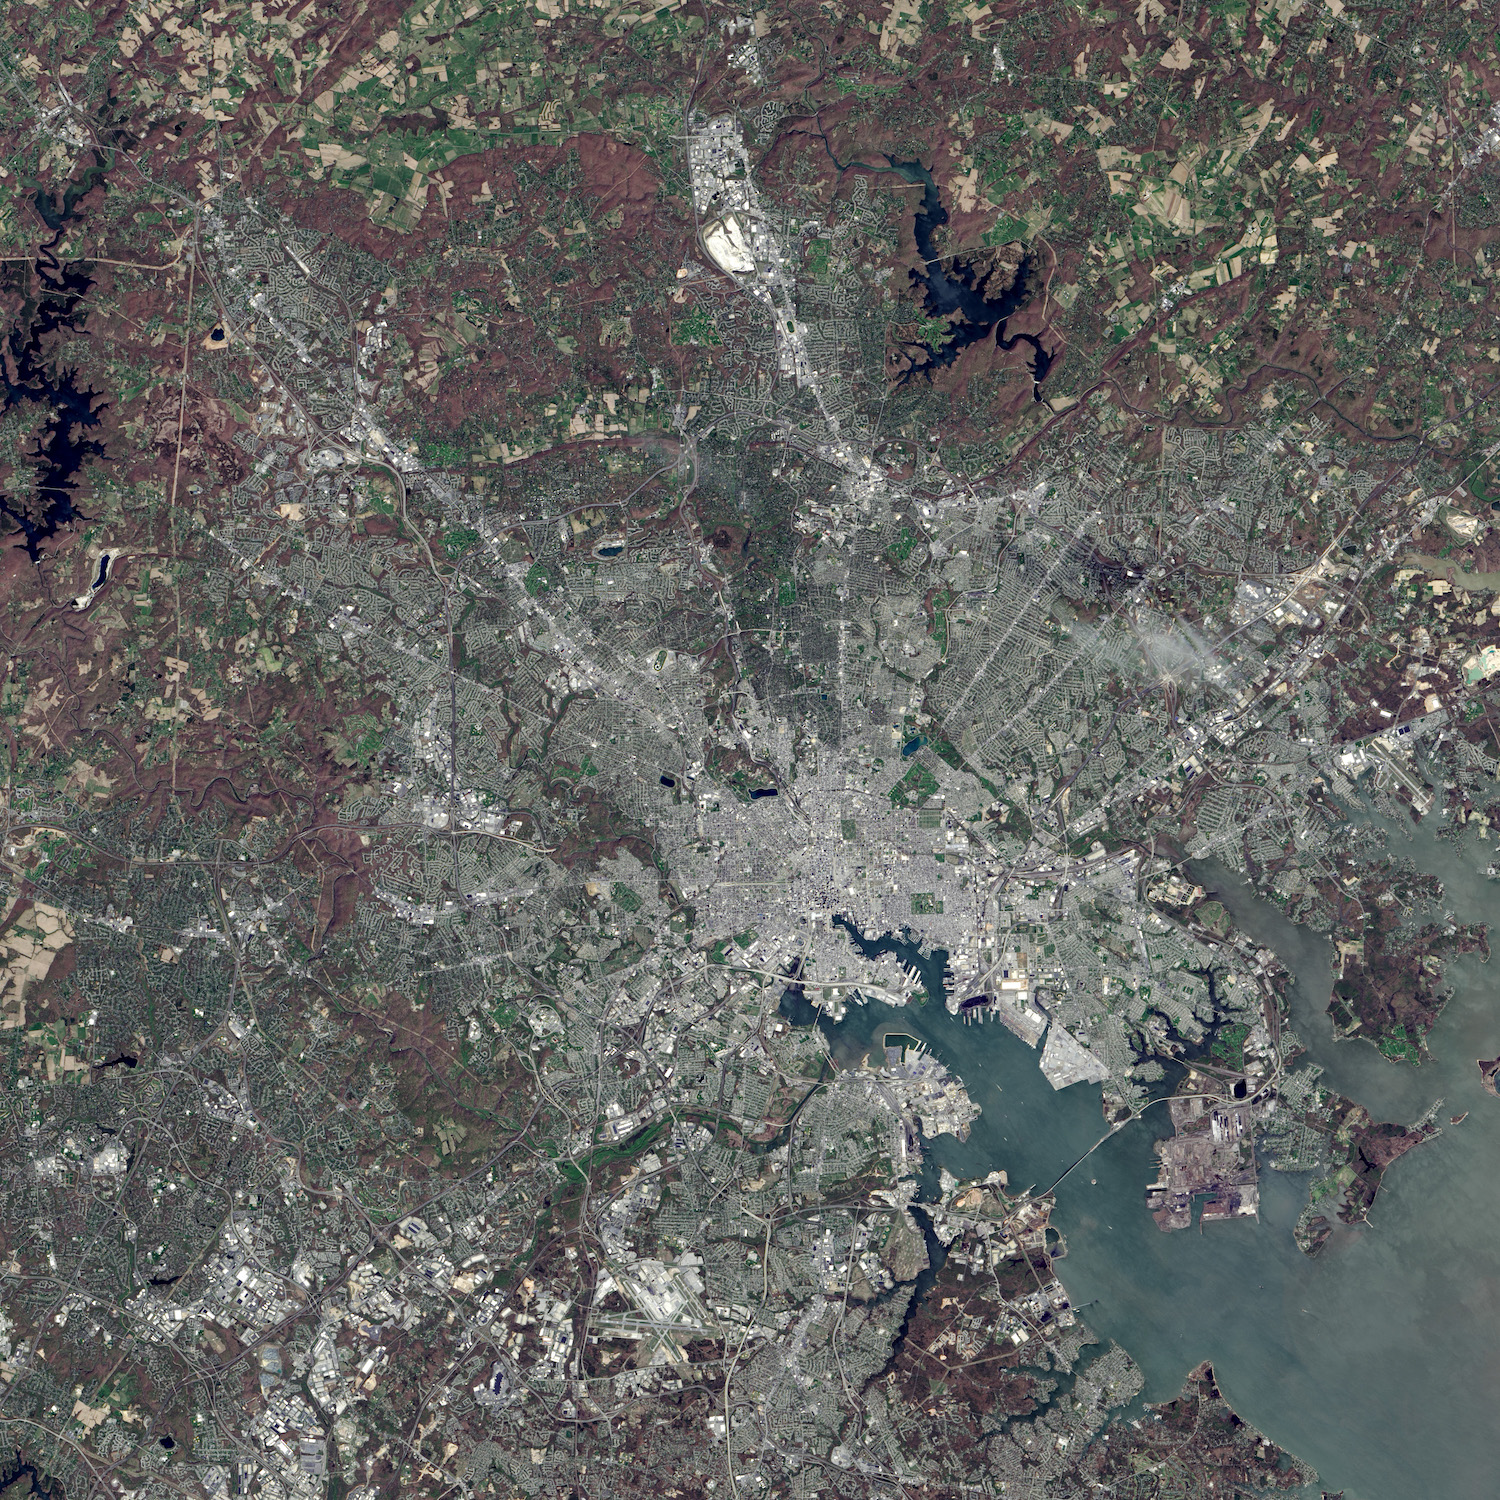 Today's Image of the Day comes thanks to the NASA Earth Observatory and features a look at Baltimore, Maryland from space.